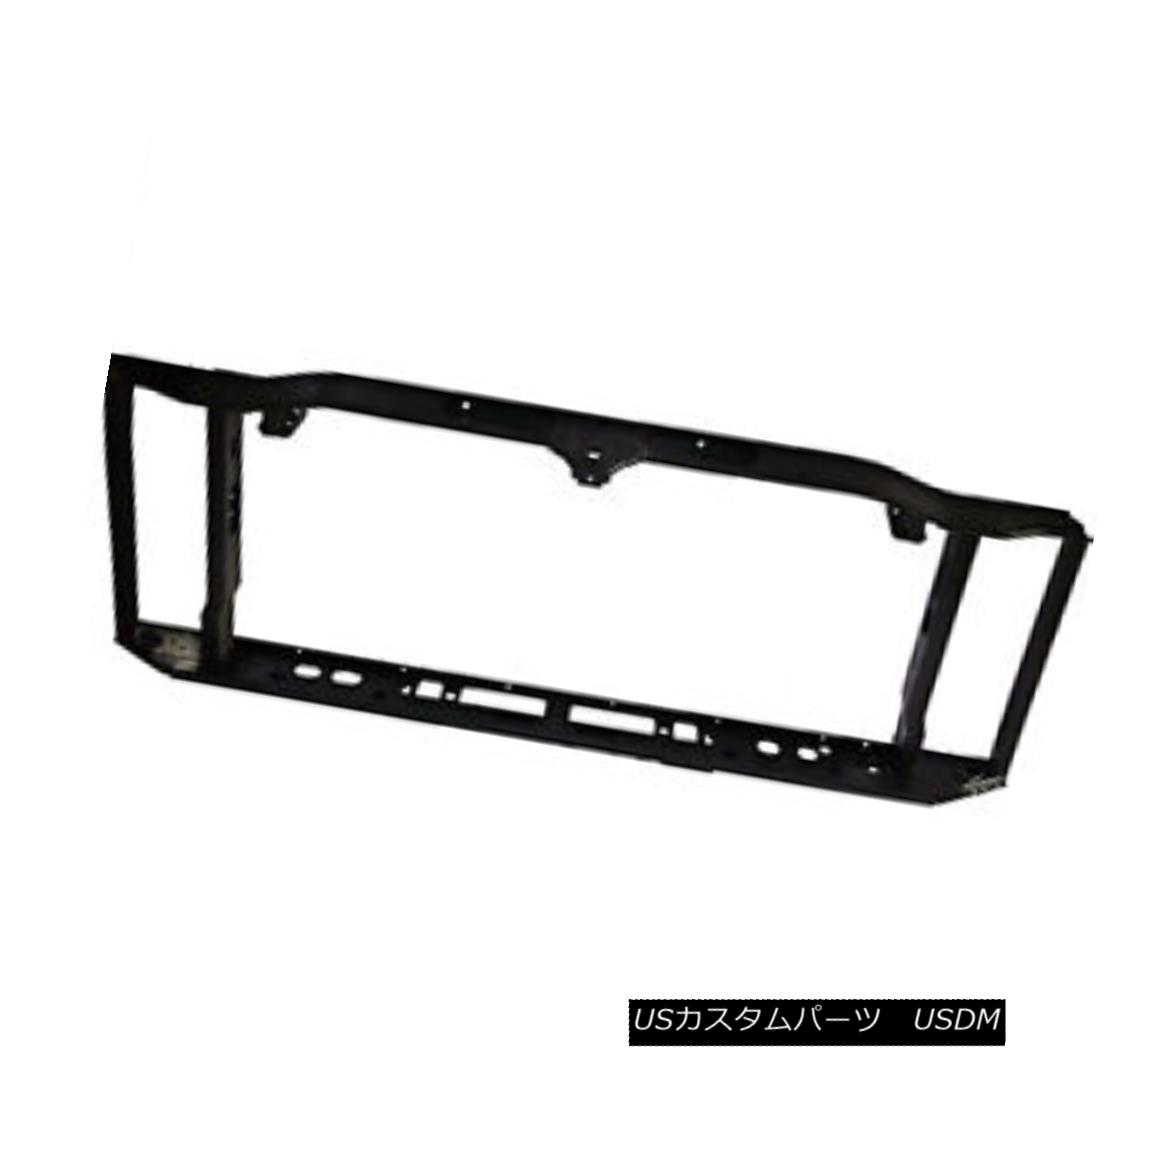 USグリル New Front Radiator Support Direct Replacement Fits 2014-17 Chevy Silverado 1500 新しいフロントラジエーターのサポート2014-17 Chevy Silverado 1500